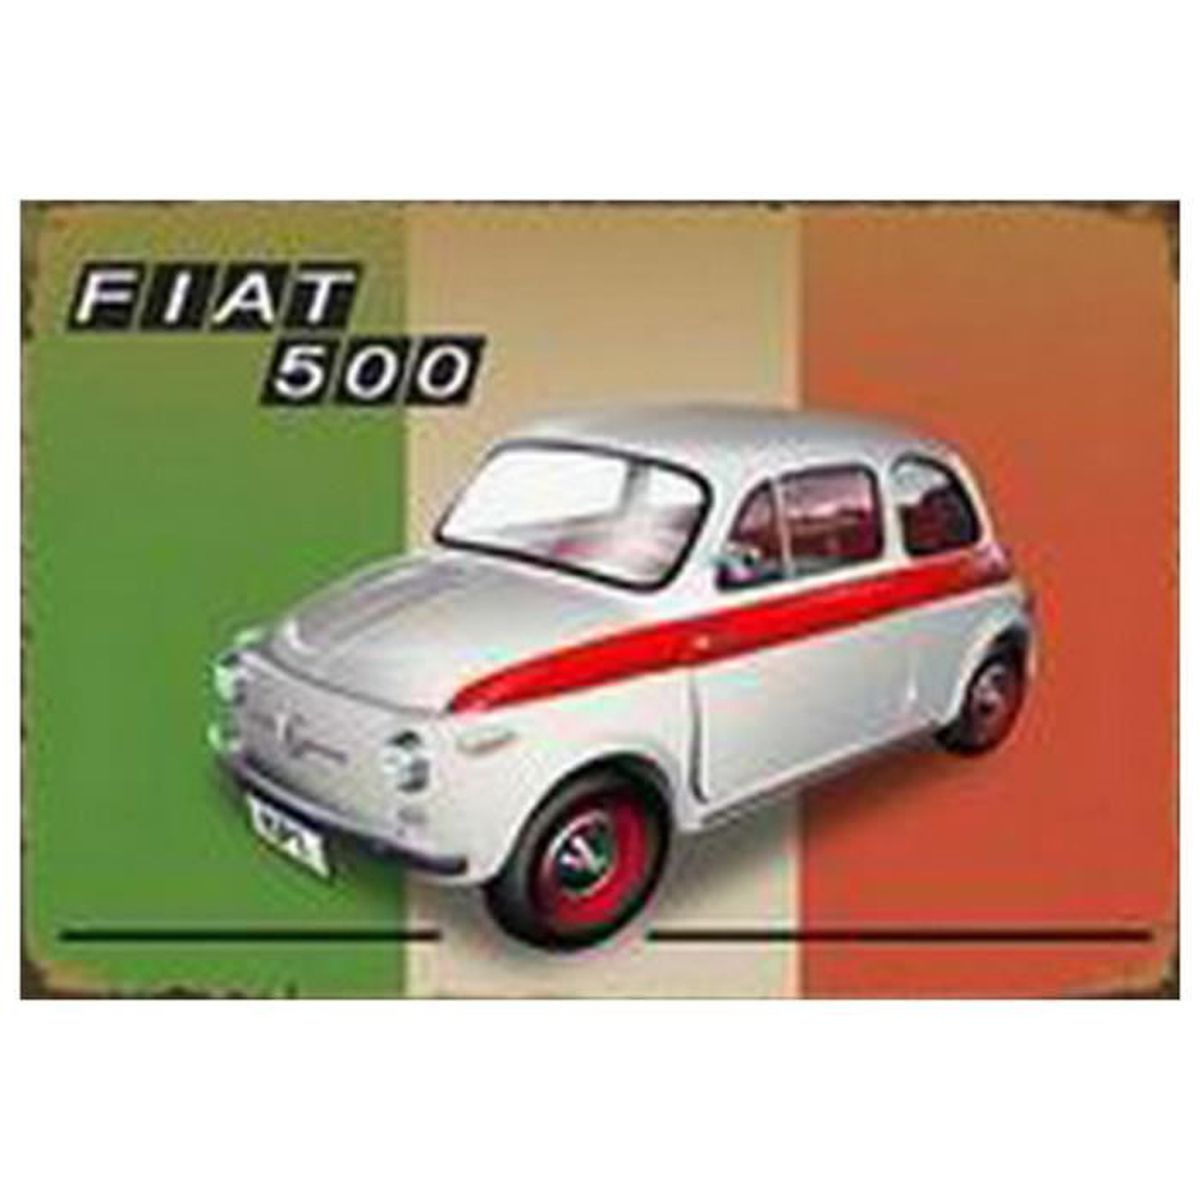 affiche plaque metal voiture legende eu fiat 500 achat vente objet d coration murale cdiscount. Black Bedroom Furniture Sets. Home Design Ideas